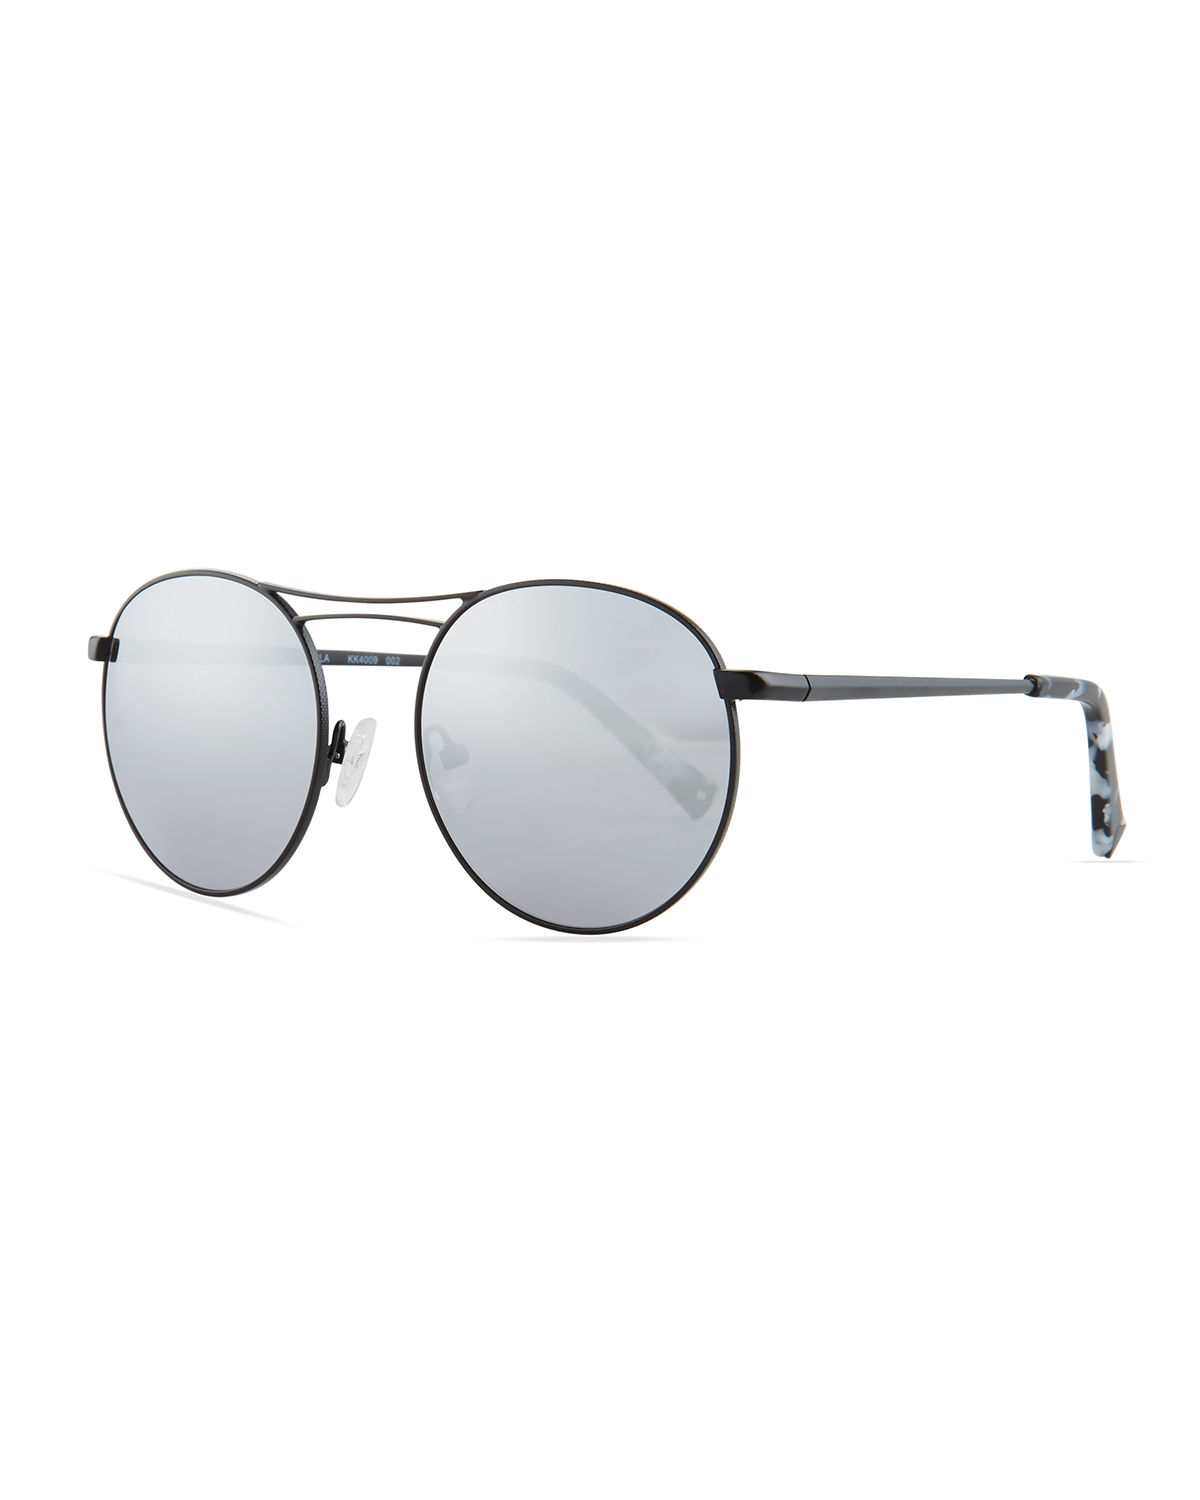 30d99bcbf1a Kendall + Kylie Bella Thin Wire Round Sunglasses